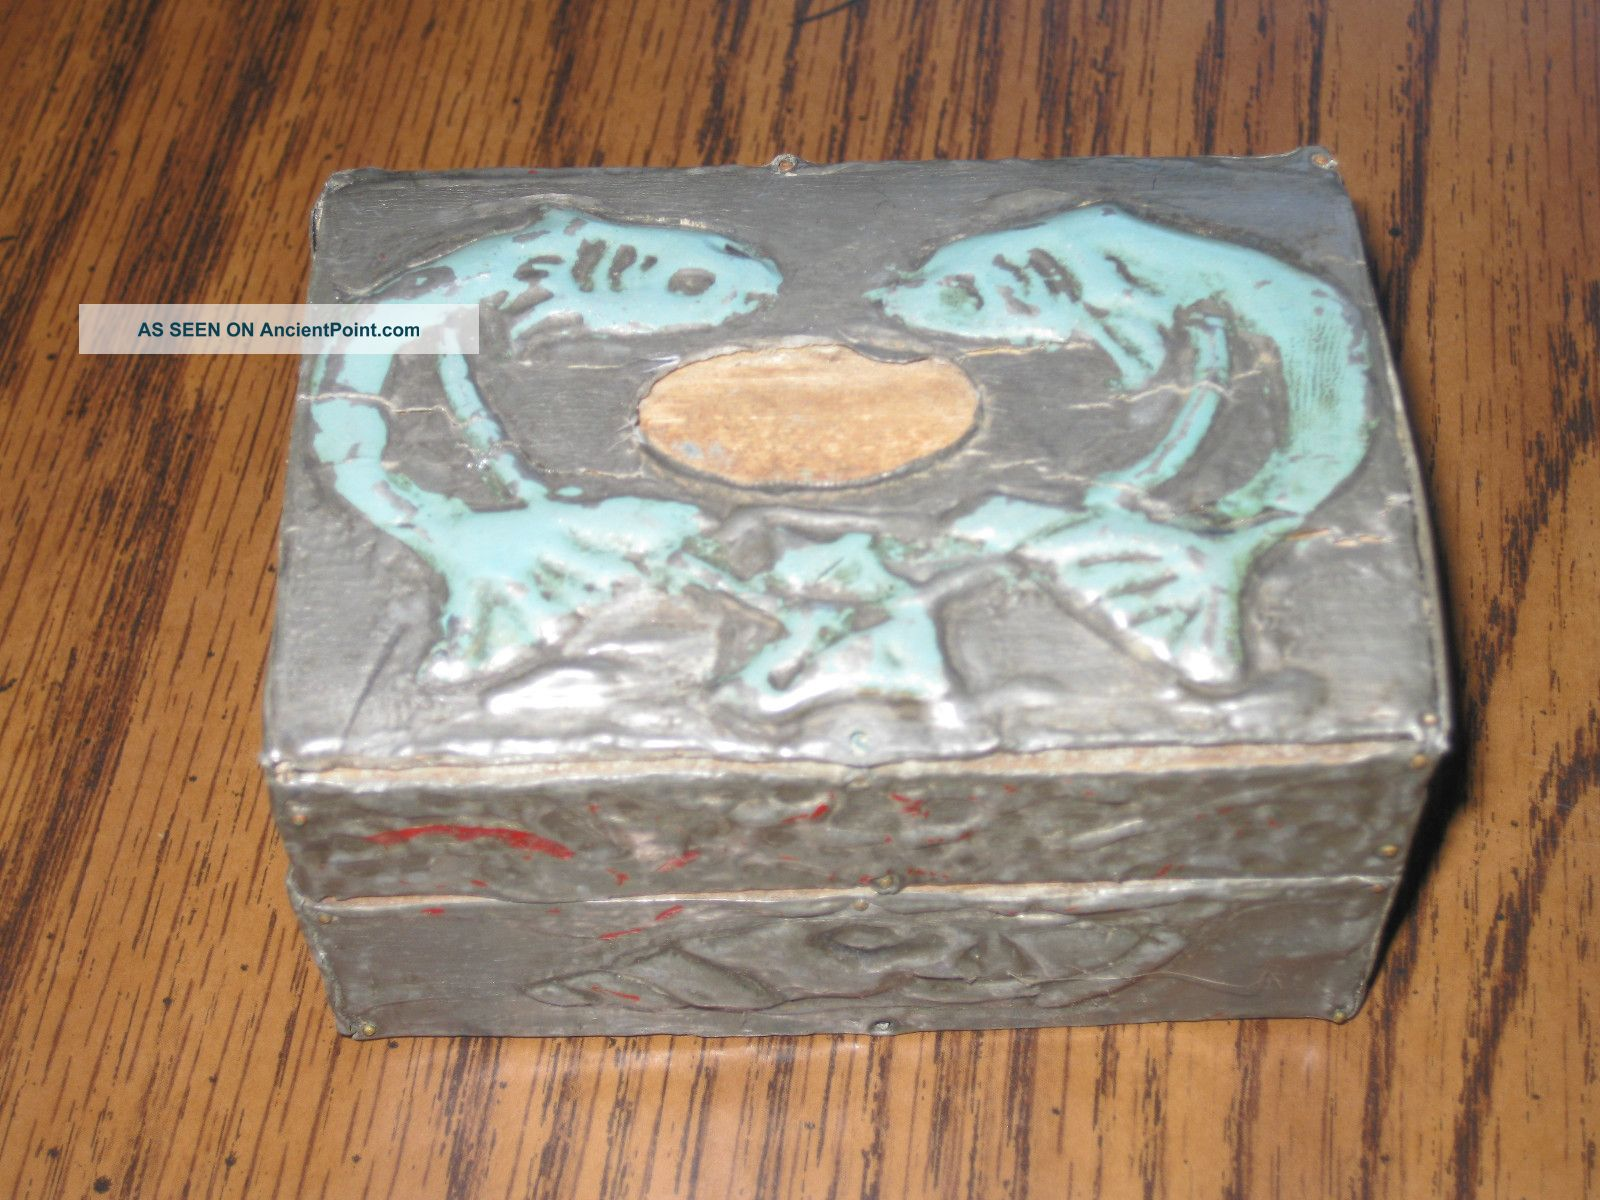 Antique Pisces Art Deco Silver Box Gem Tinover Wood Fish Trinket Box Keep Sake Boxes photo